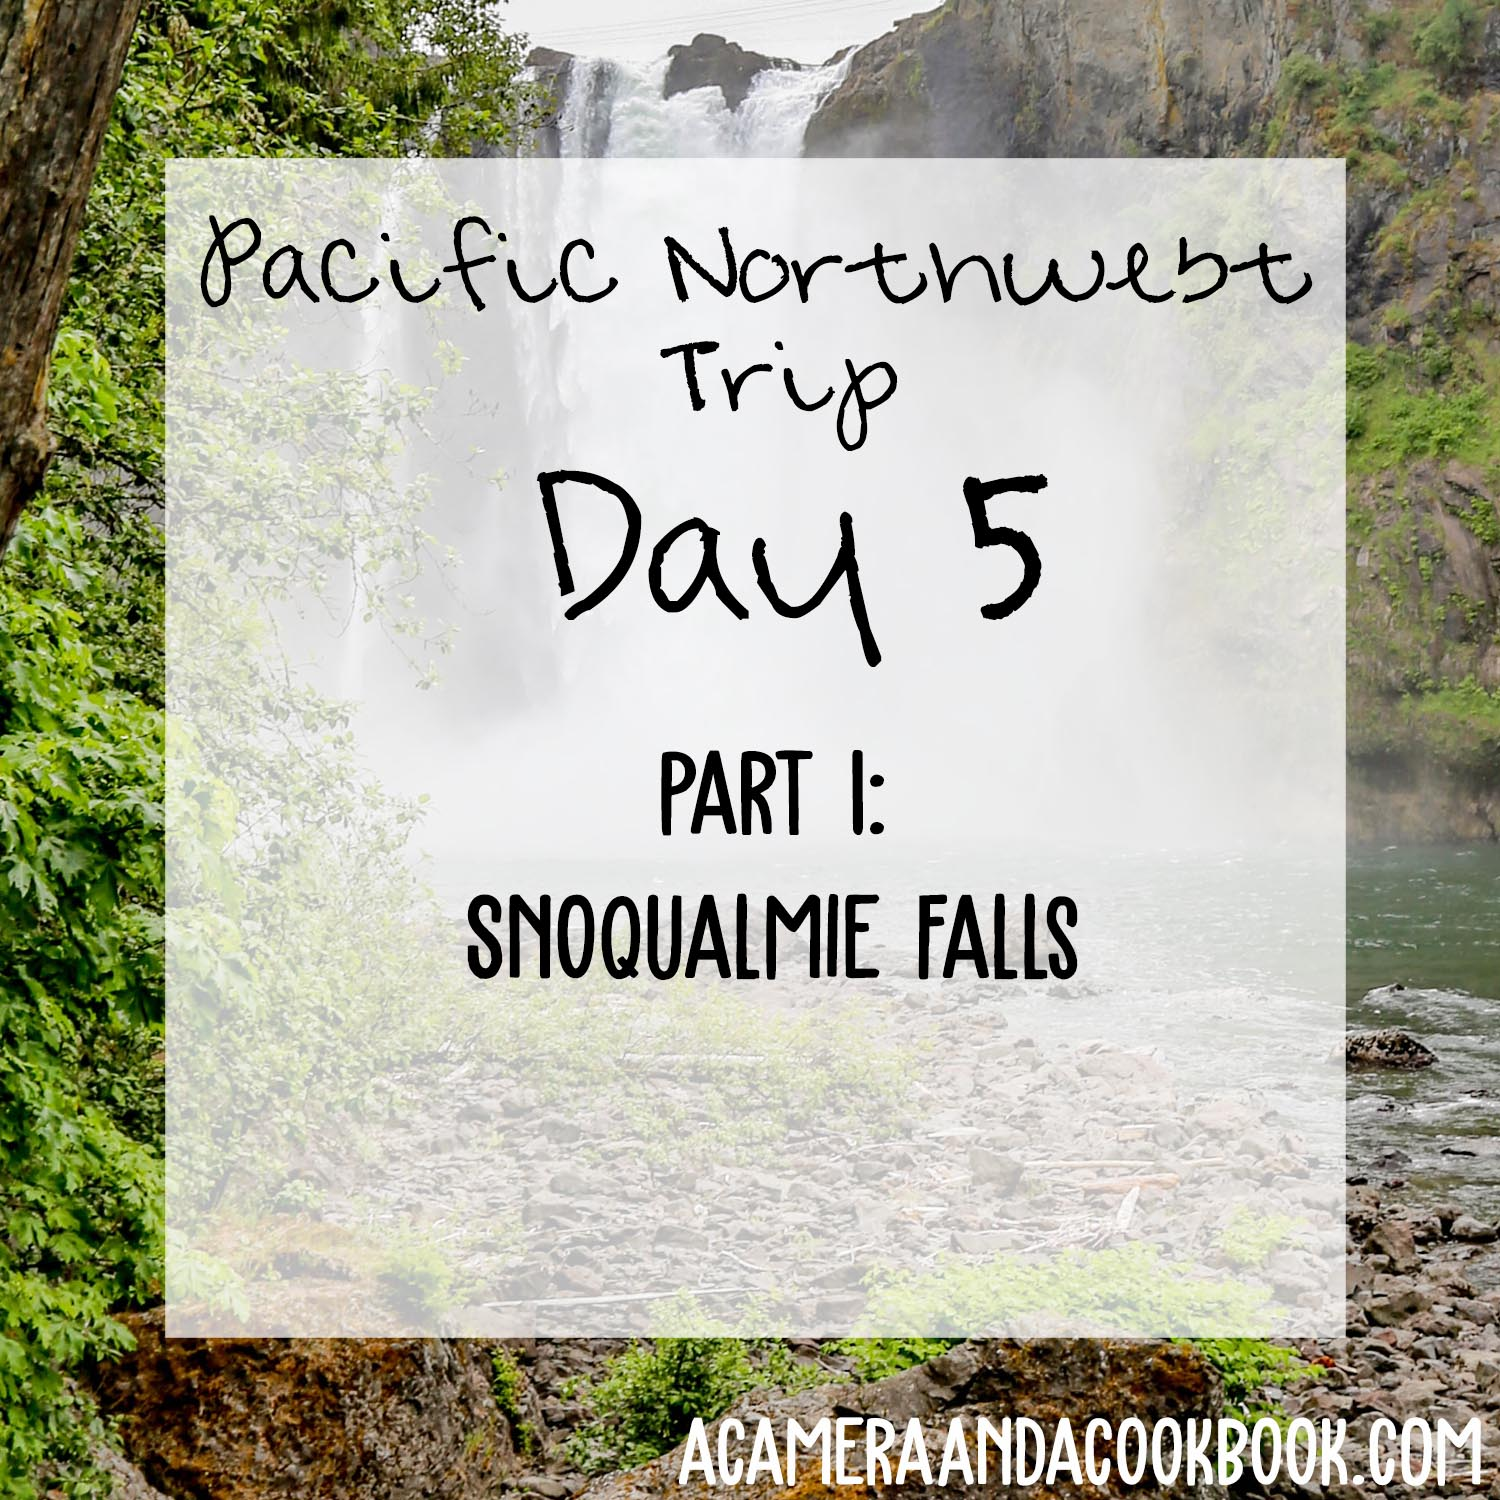 Pacific NW Trip: Day 5 - Part 1